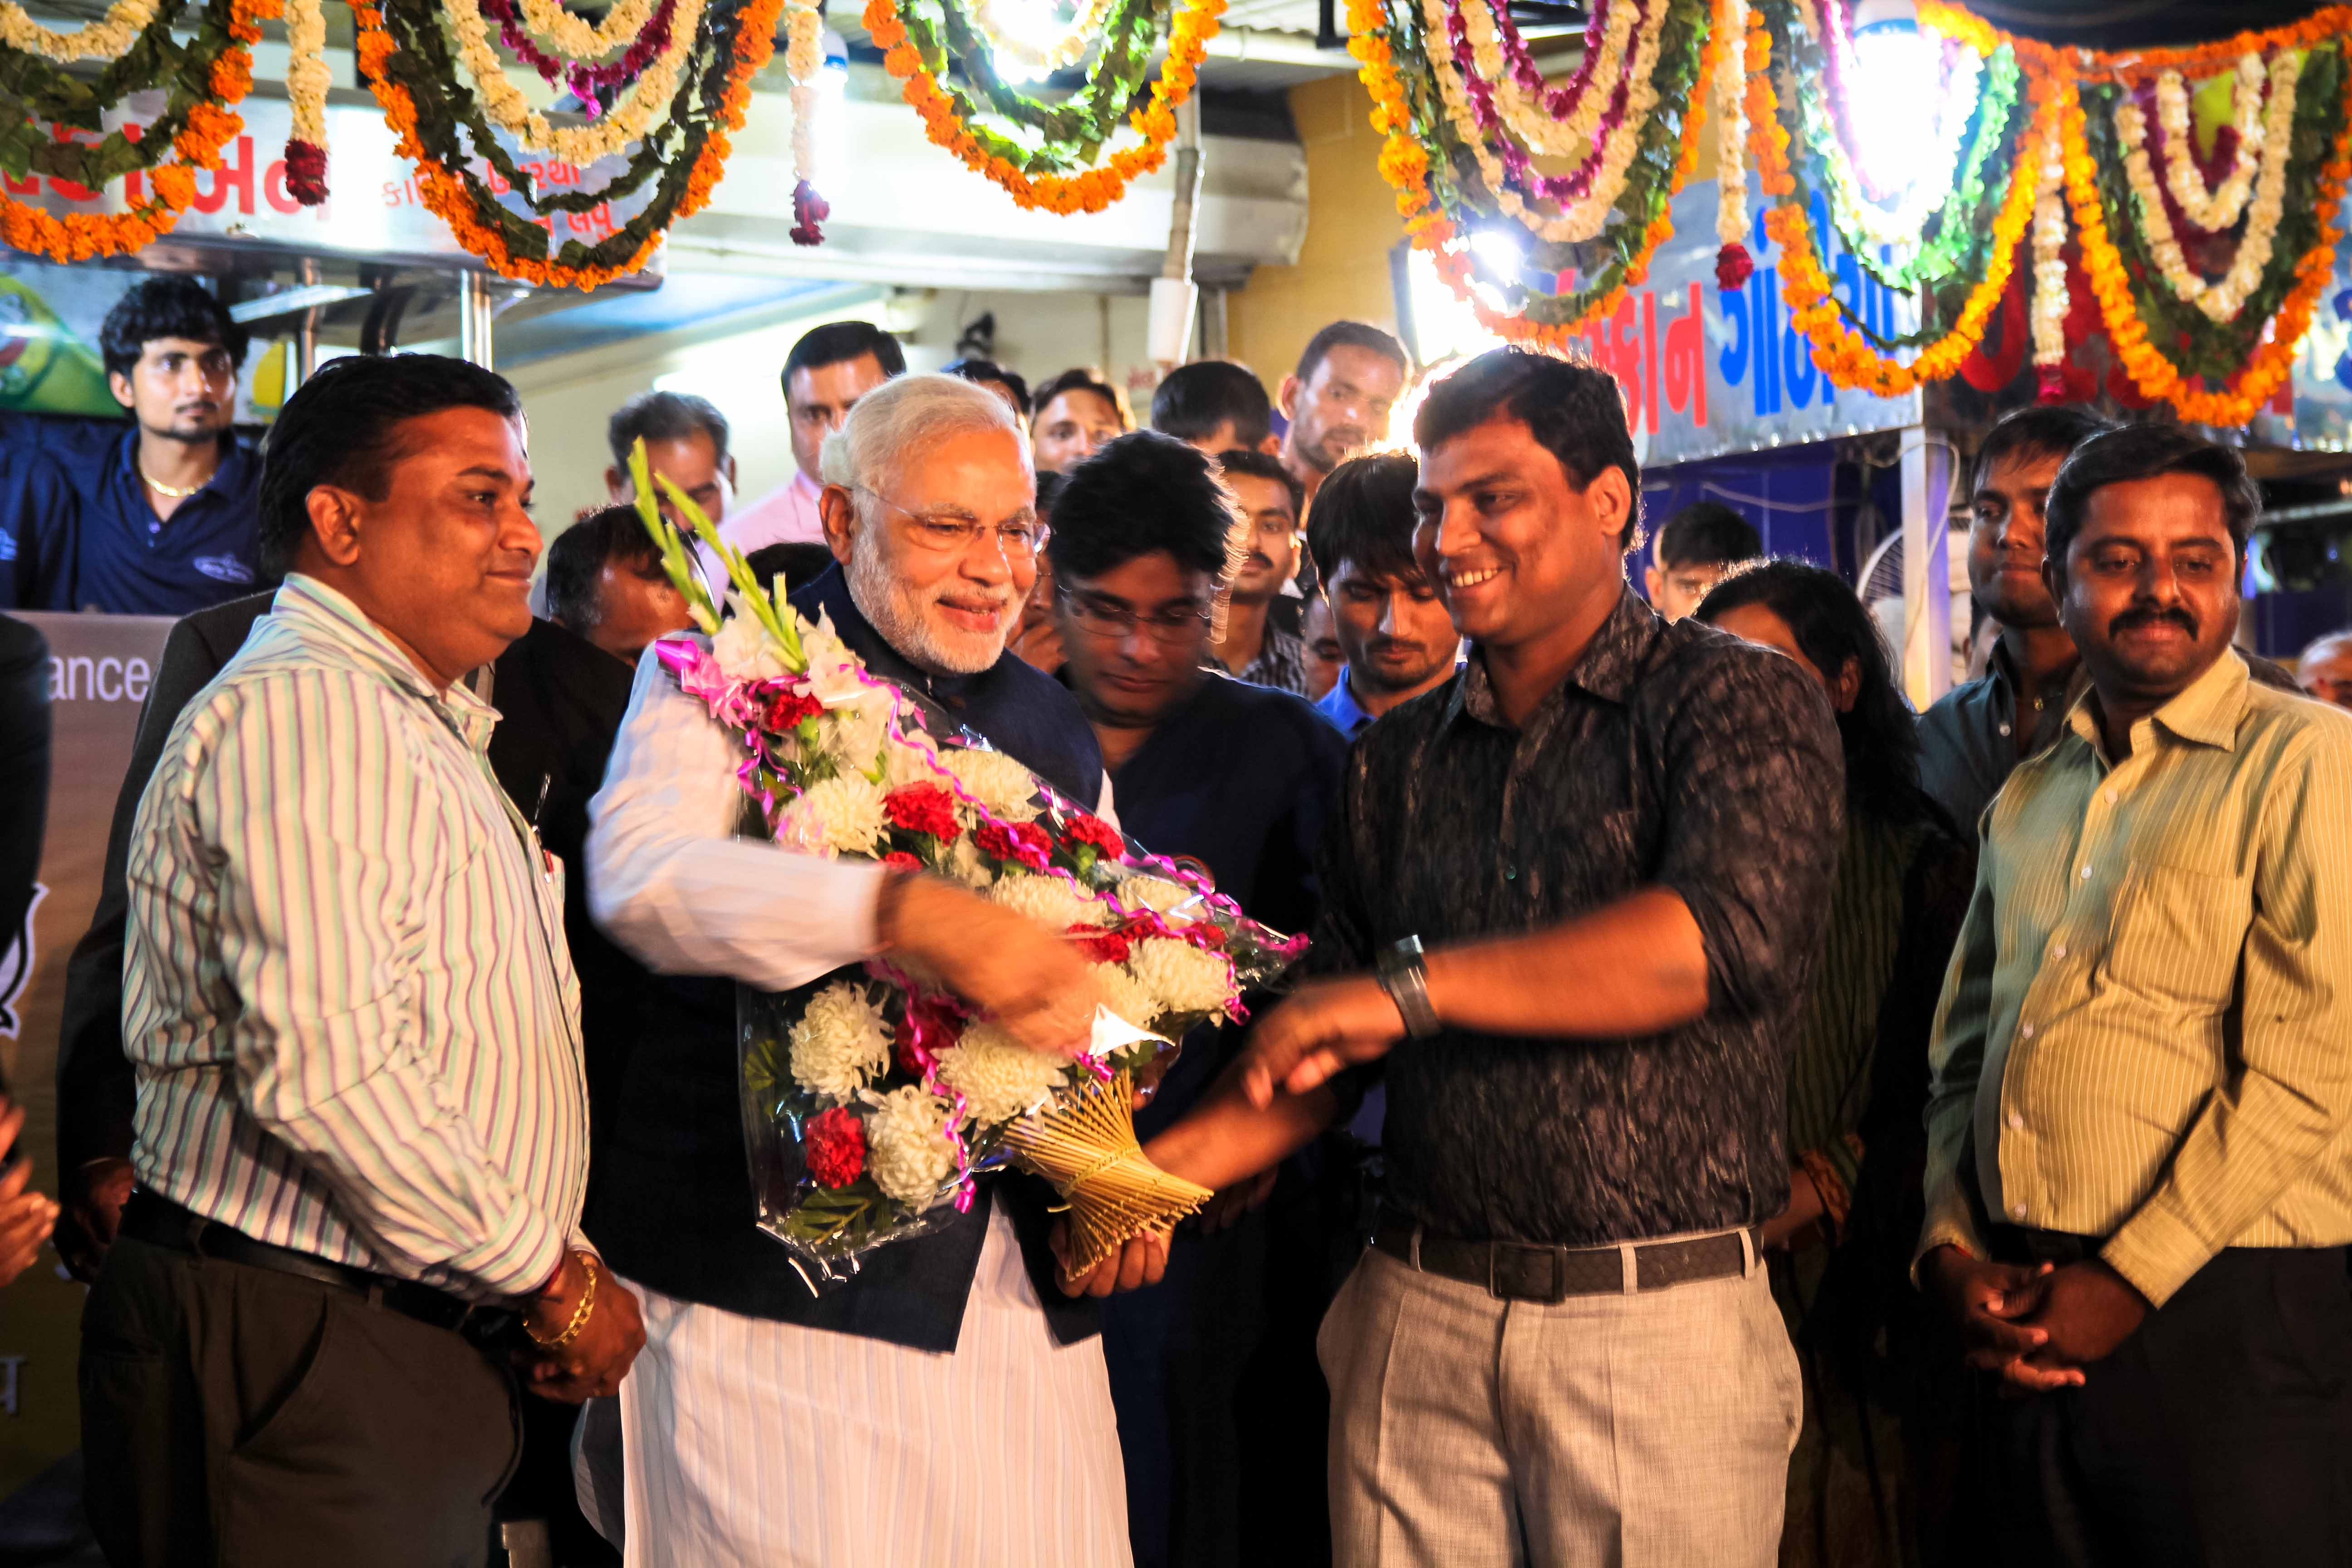 Iscon Ganthiya owner Mandeep Patel presented Narendra Modi with a garland of flowers in addition to cups of tea at the Chai Pe Charcha in Ahmedabad, Gujarat on Feb. 12, 2014.